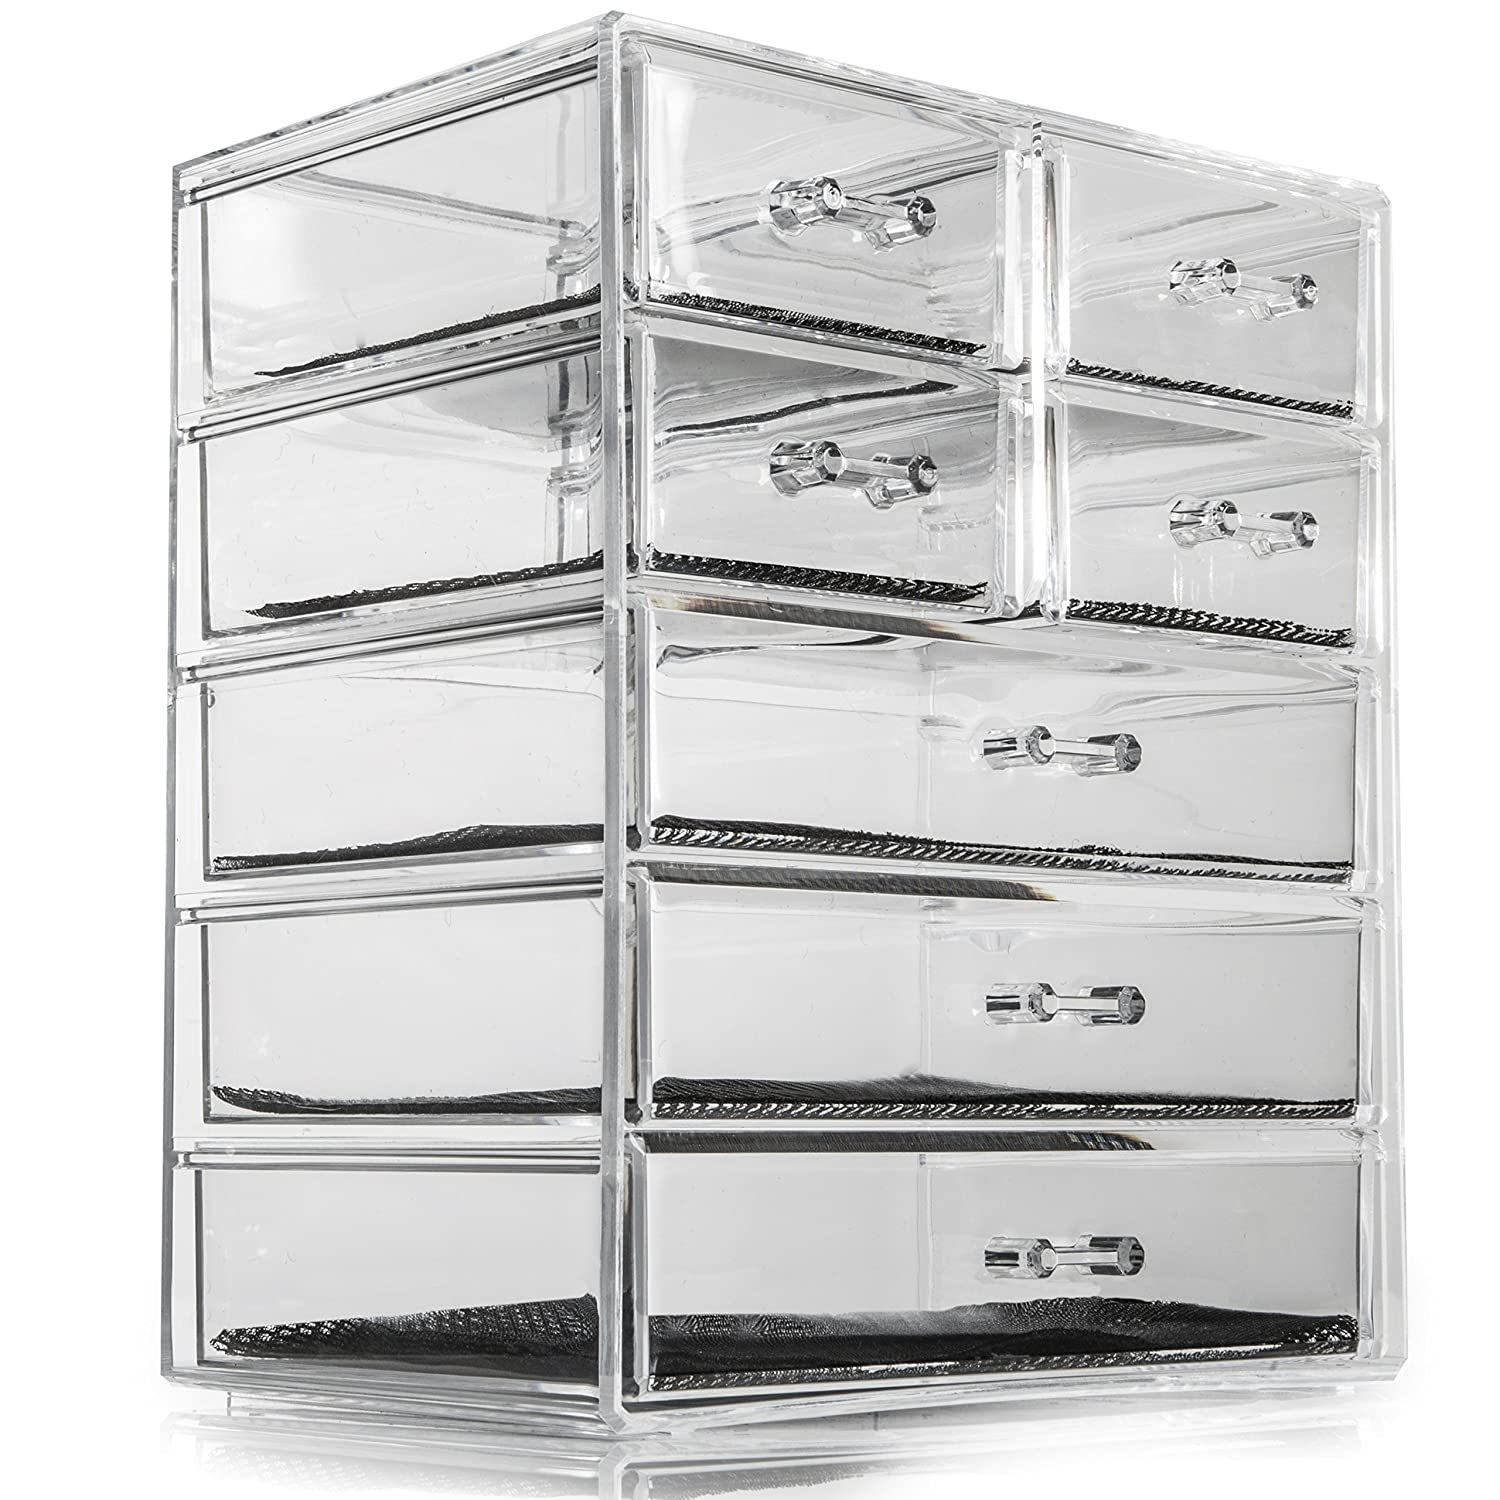 Acrylic Makeup Organiser SO02889 Deluxe Large 7 Clear Drawers for Make-up, Jewellery, Cosmetic Organiser, 24 x 17 x 29cm Storage Case Perfect for Organising Small Items Soidea